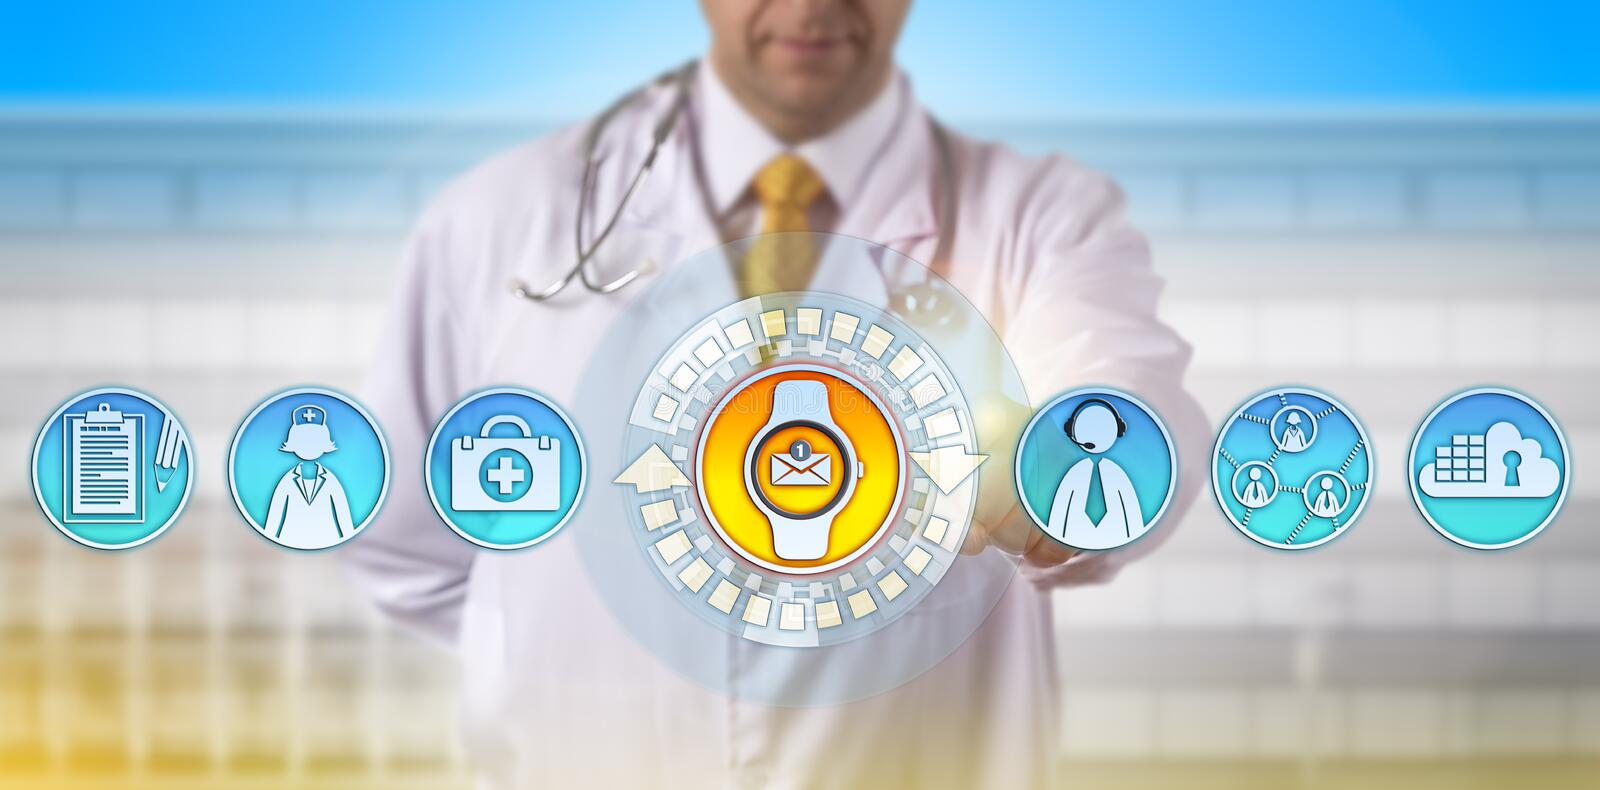 Physician Accessing E-Mail Update On Smartwatch. Unrecognizable physician accessing email update via smart watch on the move. Healthcare technology concept for royalty free stock images